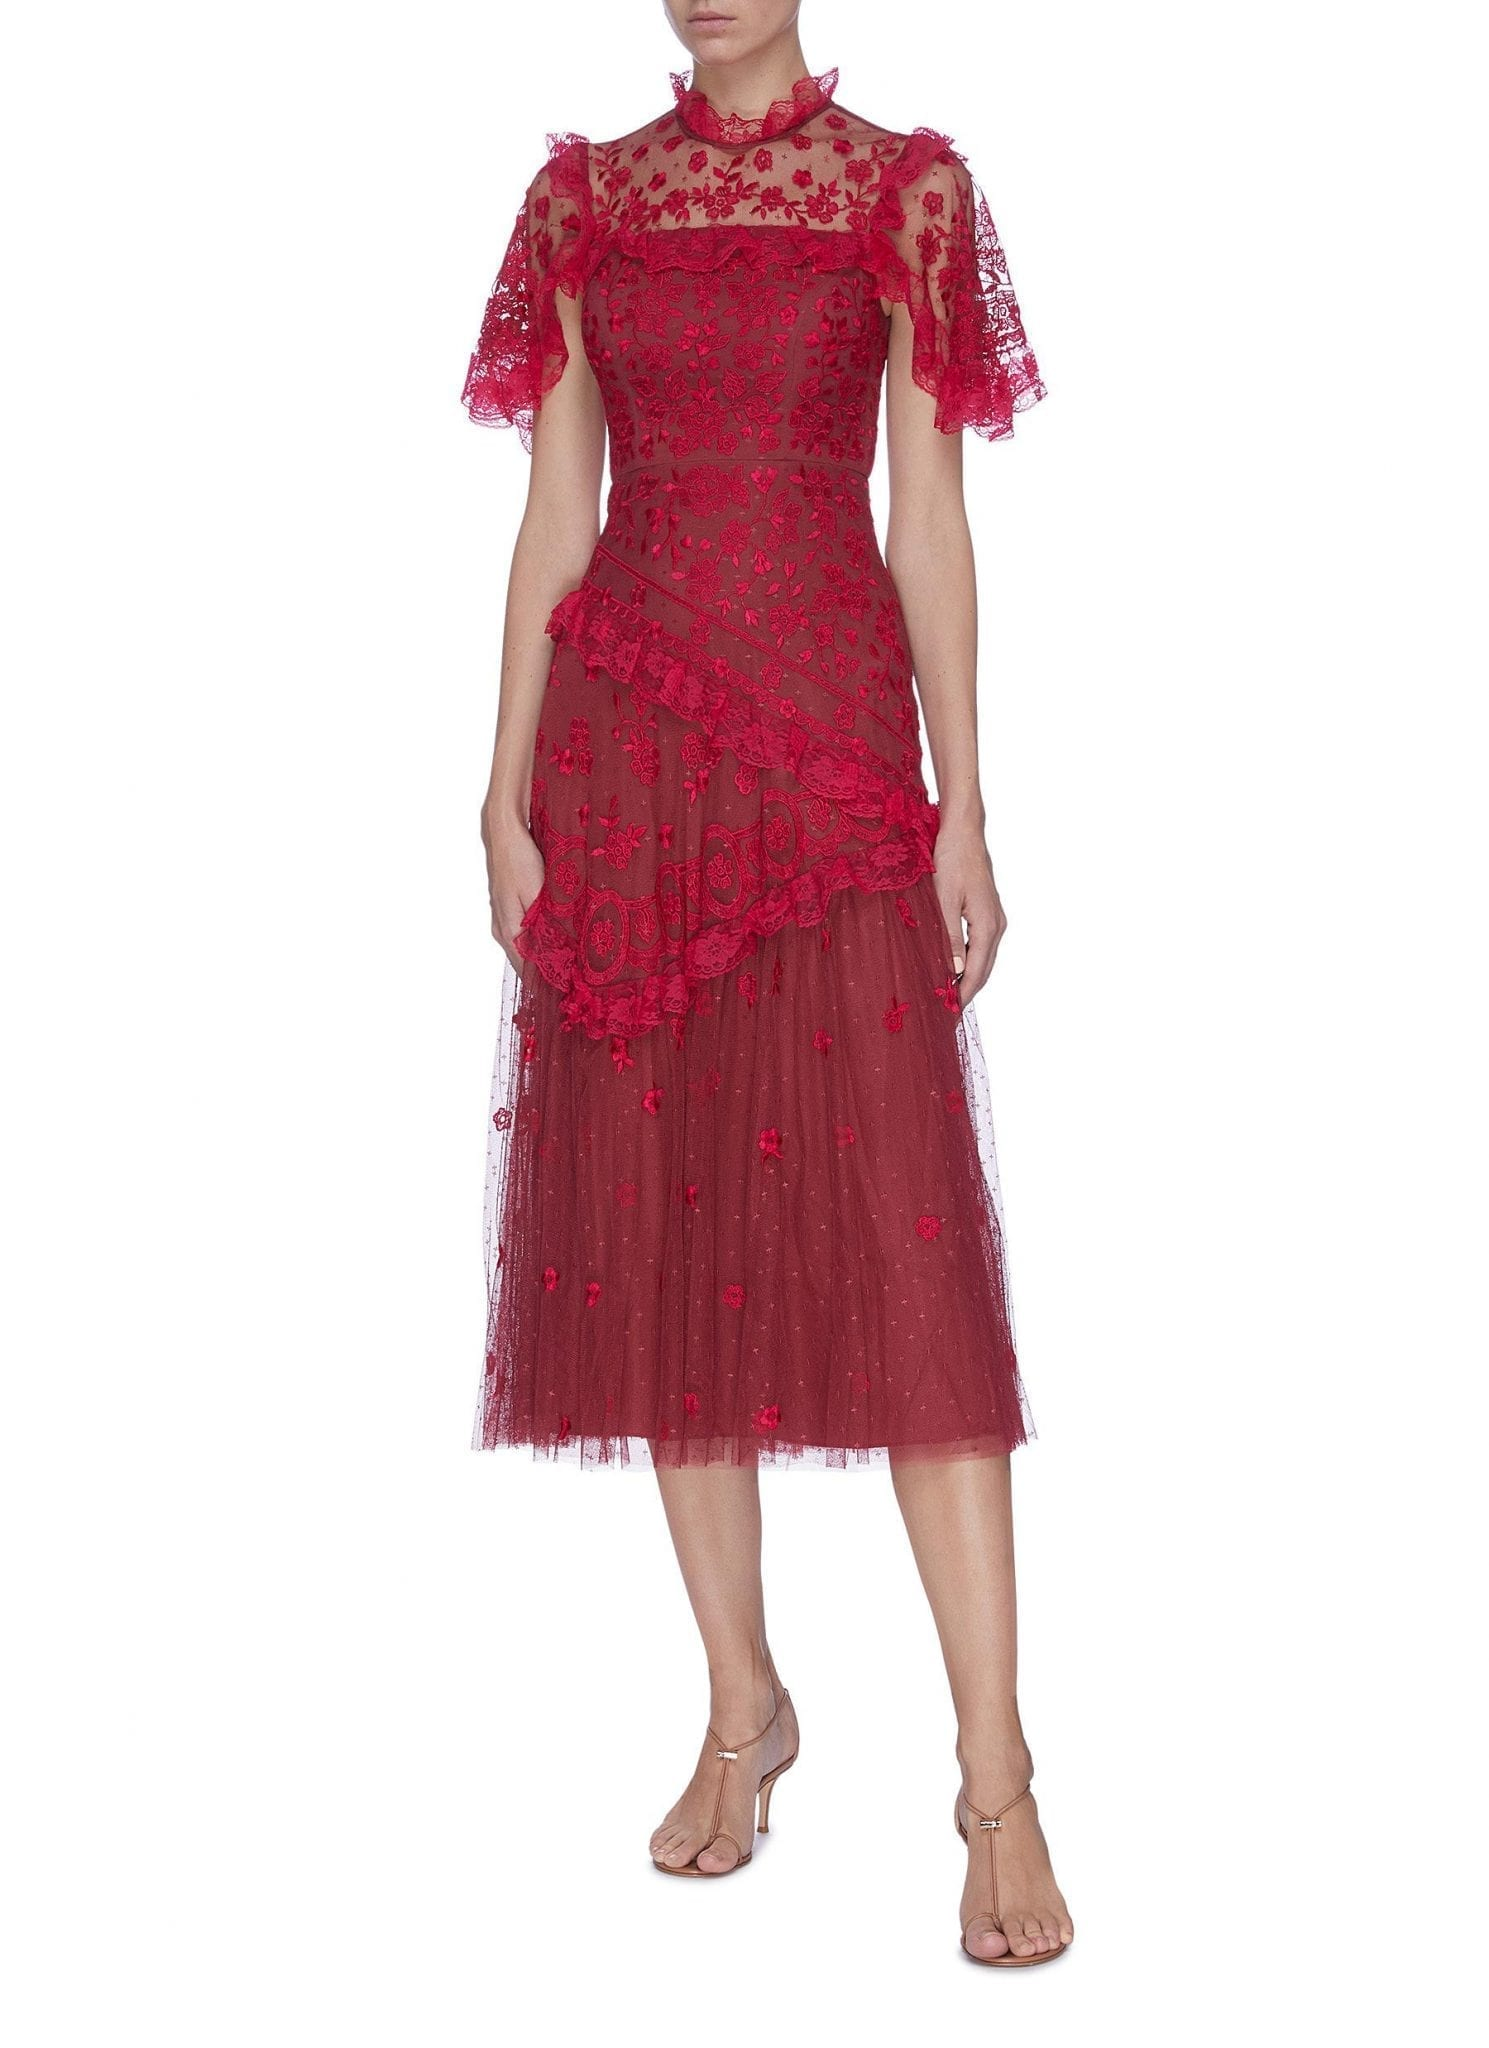 NEEDLE & THREAD 'Elsa Ballerina' Floral Embroidered Lace Trim Ruffle Tiered Tulle Midi Dress